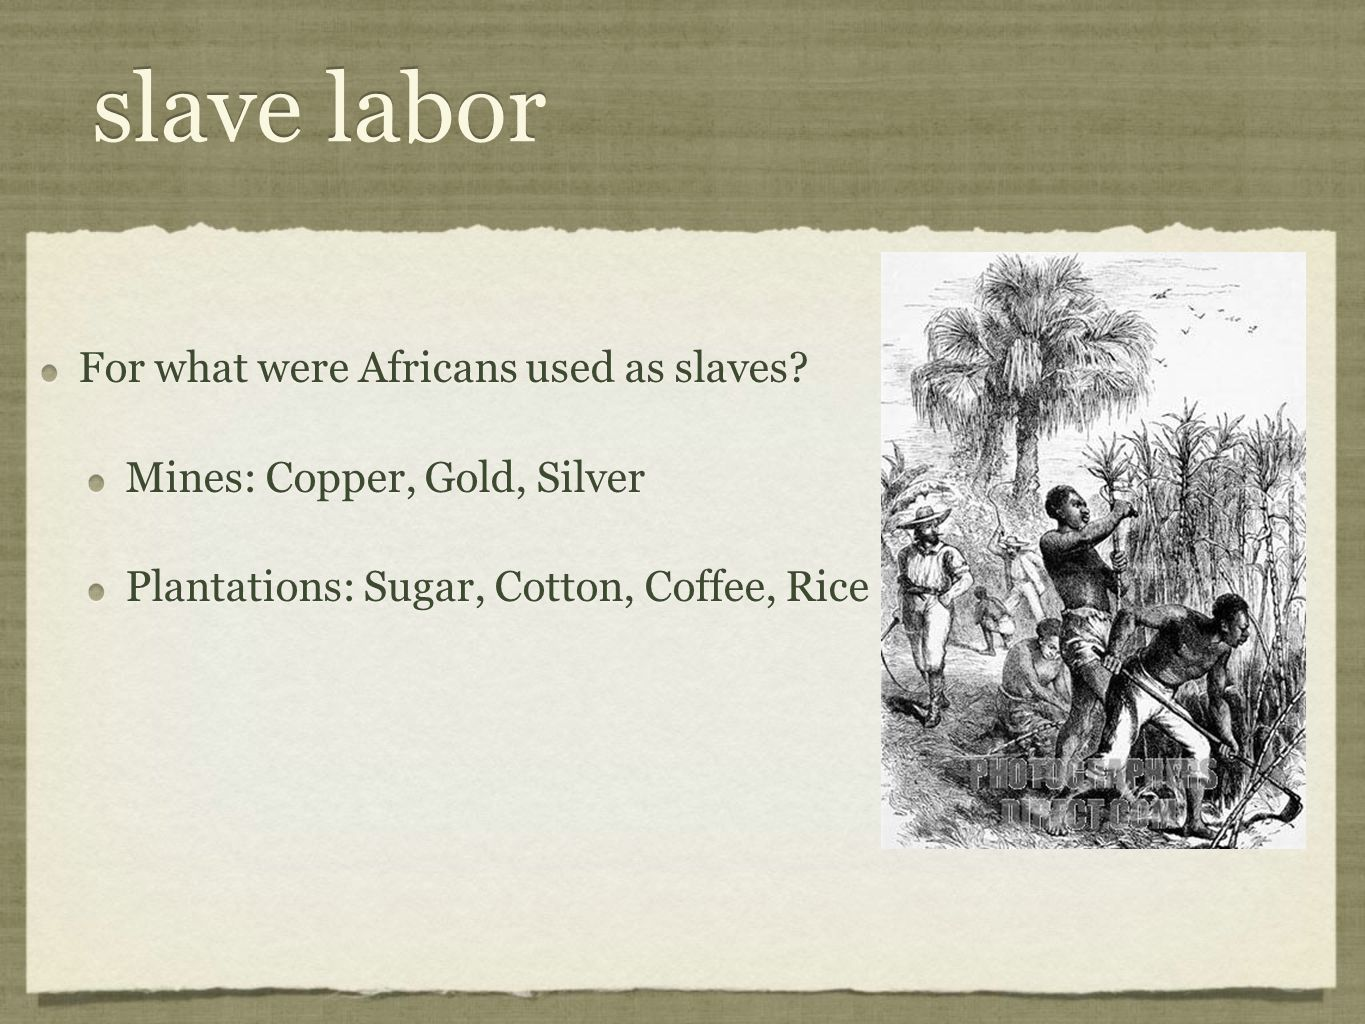 slave labor For what were Africans used as slaves? Mines: Copper, Gold, Silver Plantations: Sugar, Cotton, Coffee, Rice For what were Africans used as